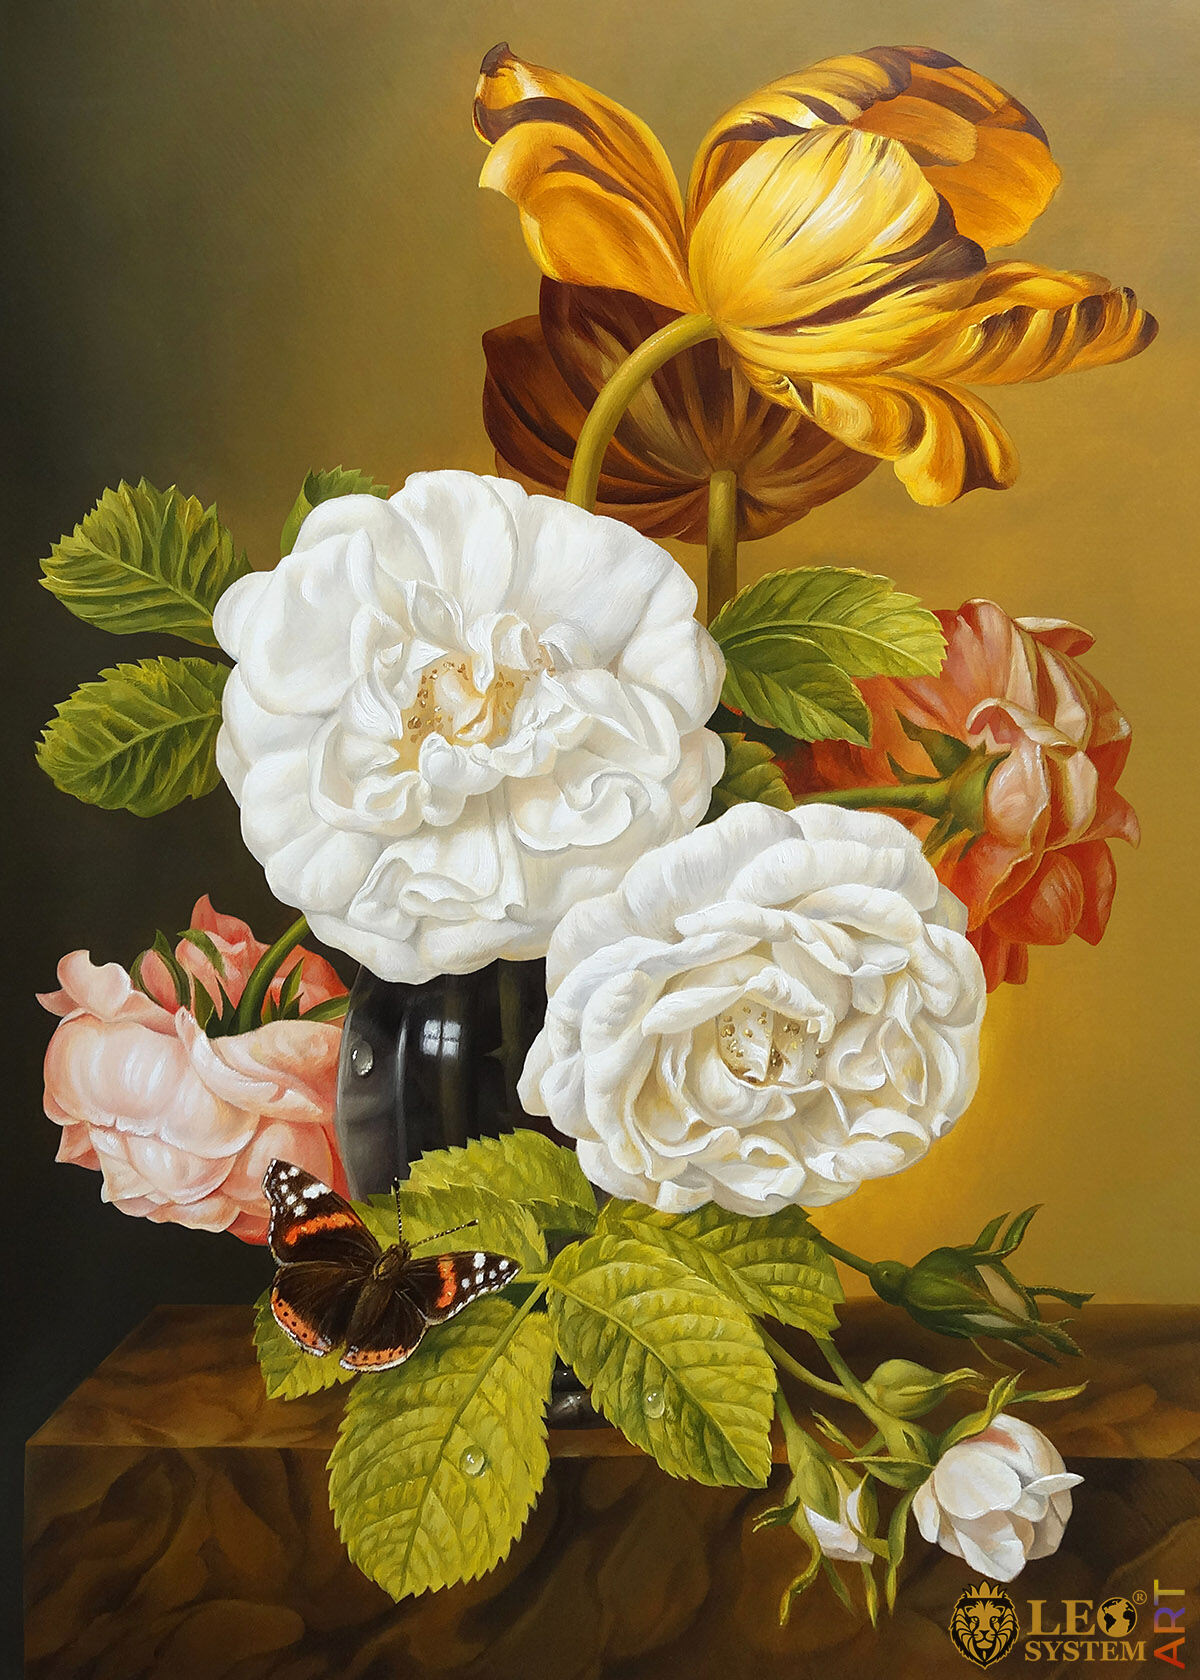 Oil painting with gorgeous flowers in a vase